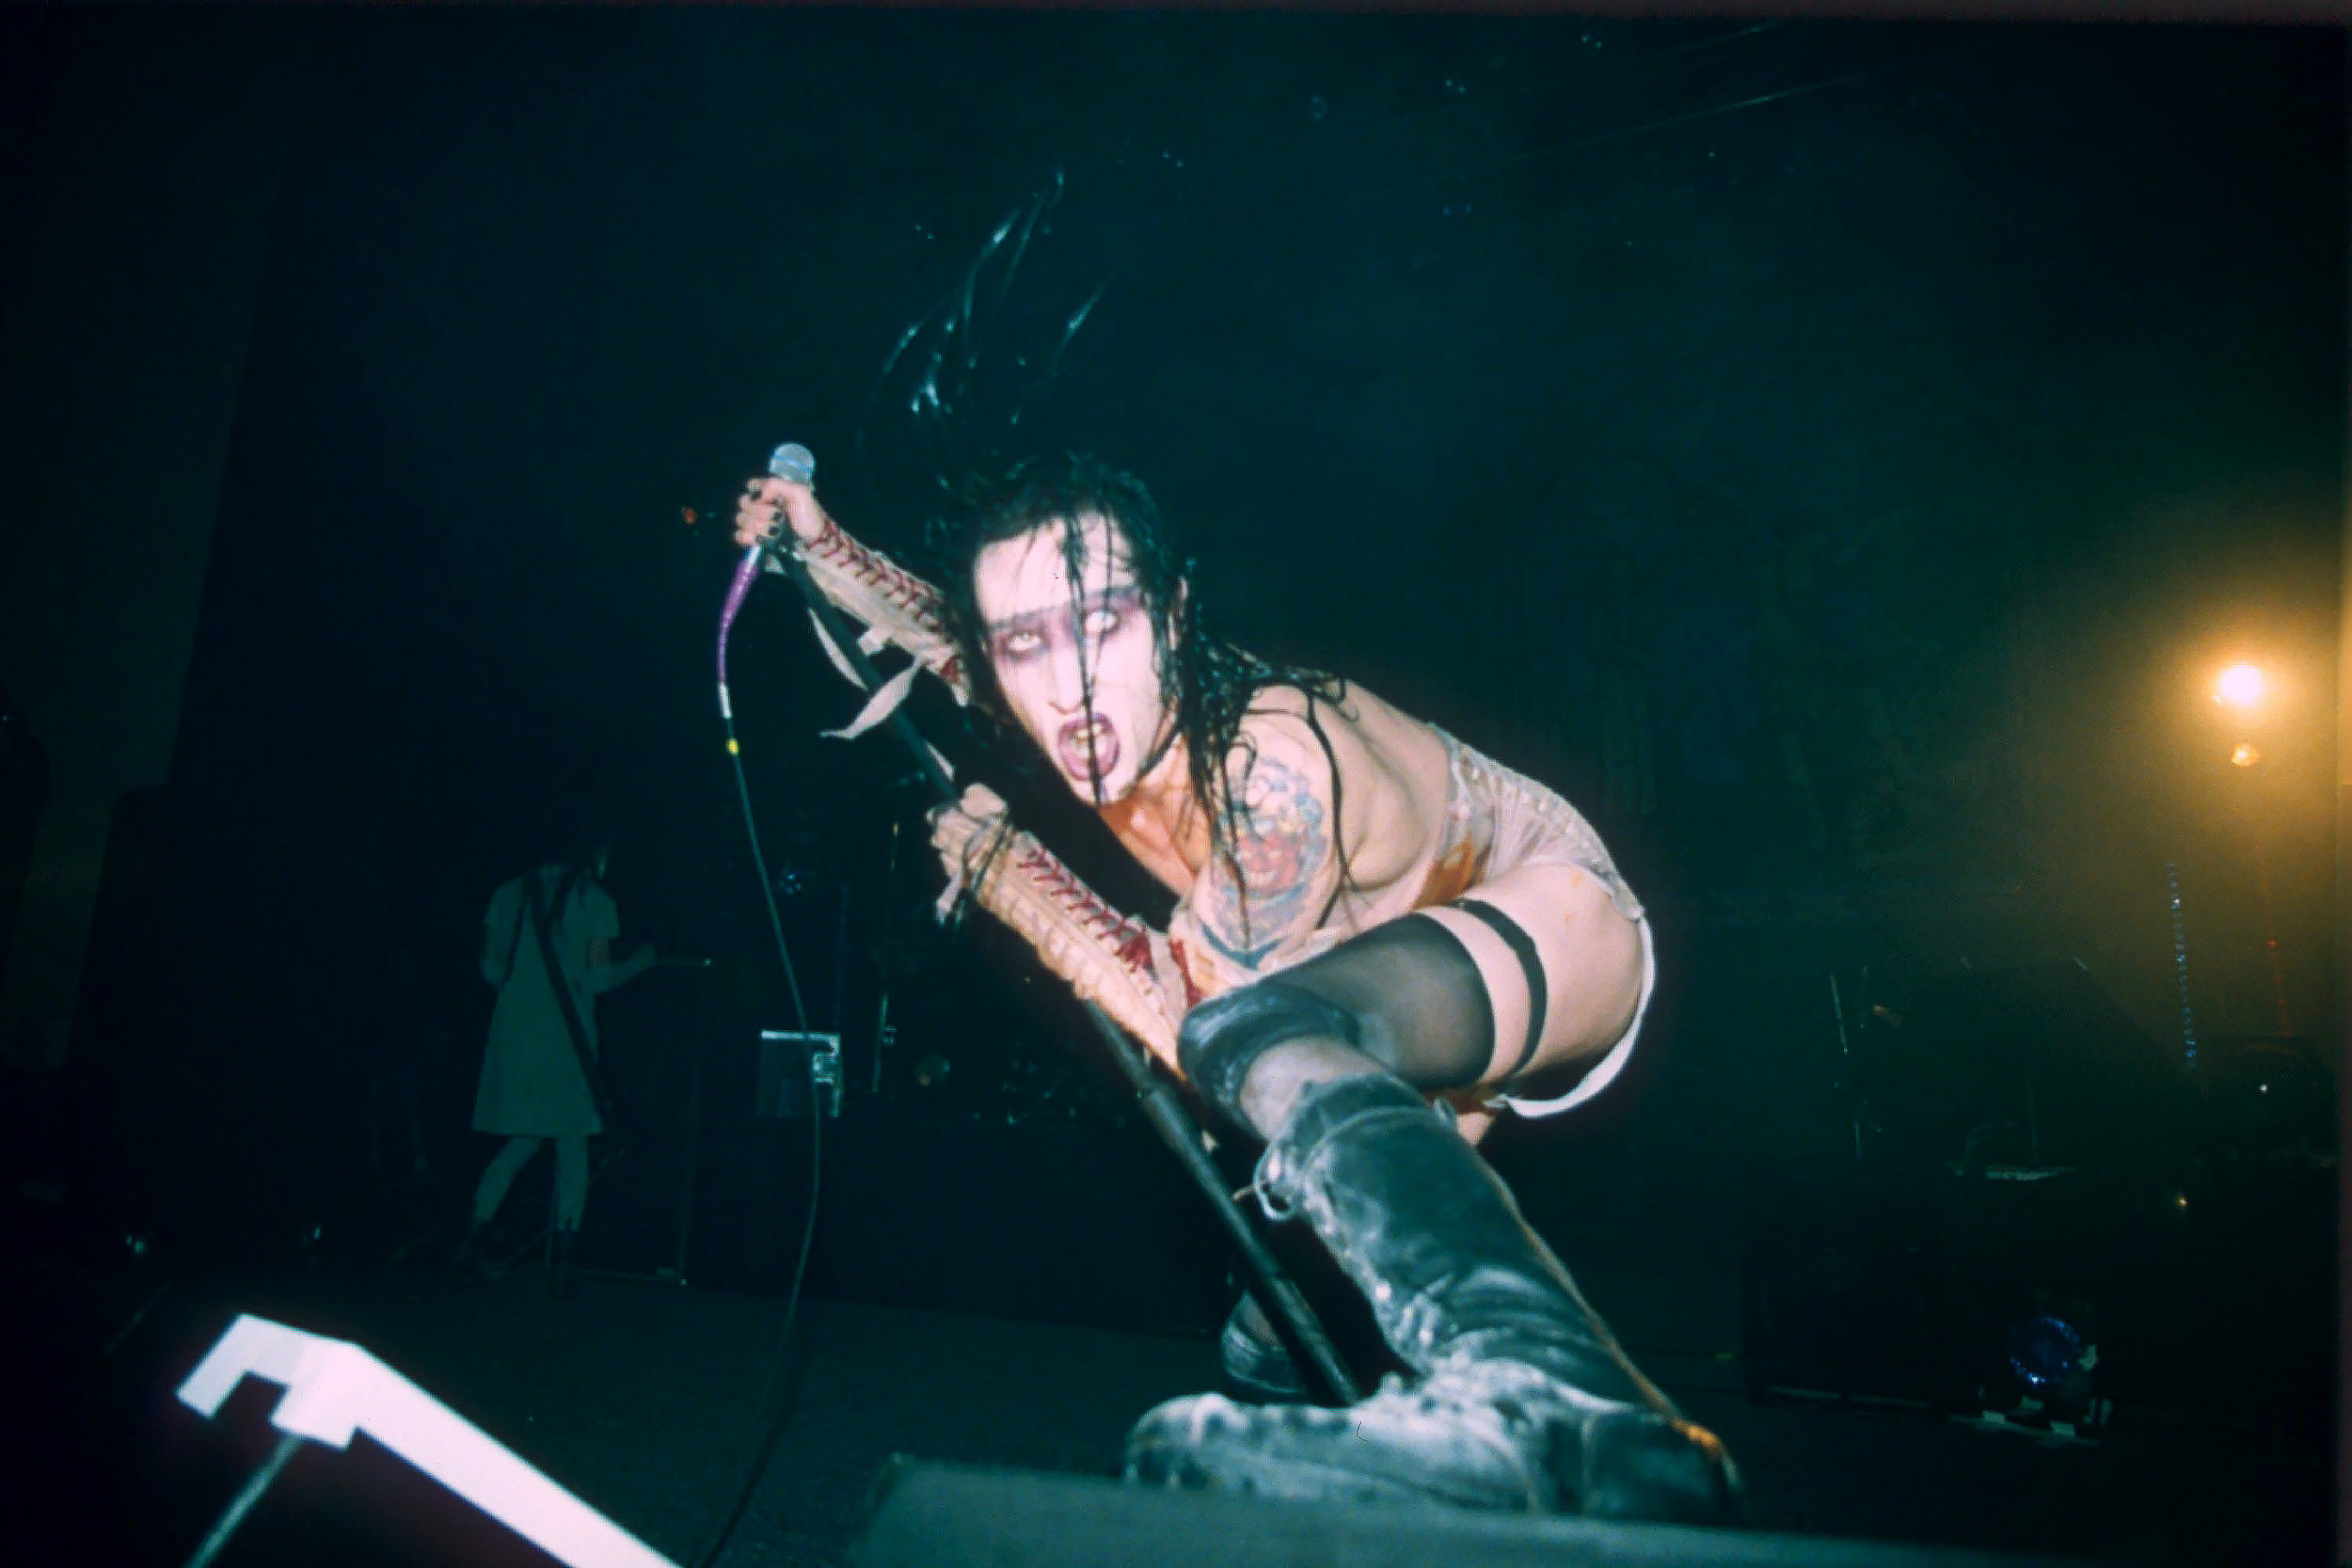 marilyn-manson-wildest-moments-89ce9033-cfd4-4bb6-8097-2581339ebefb.jpg